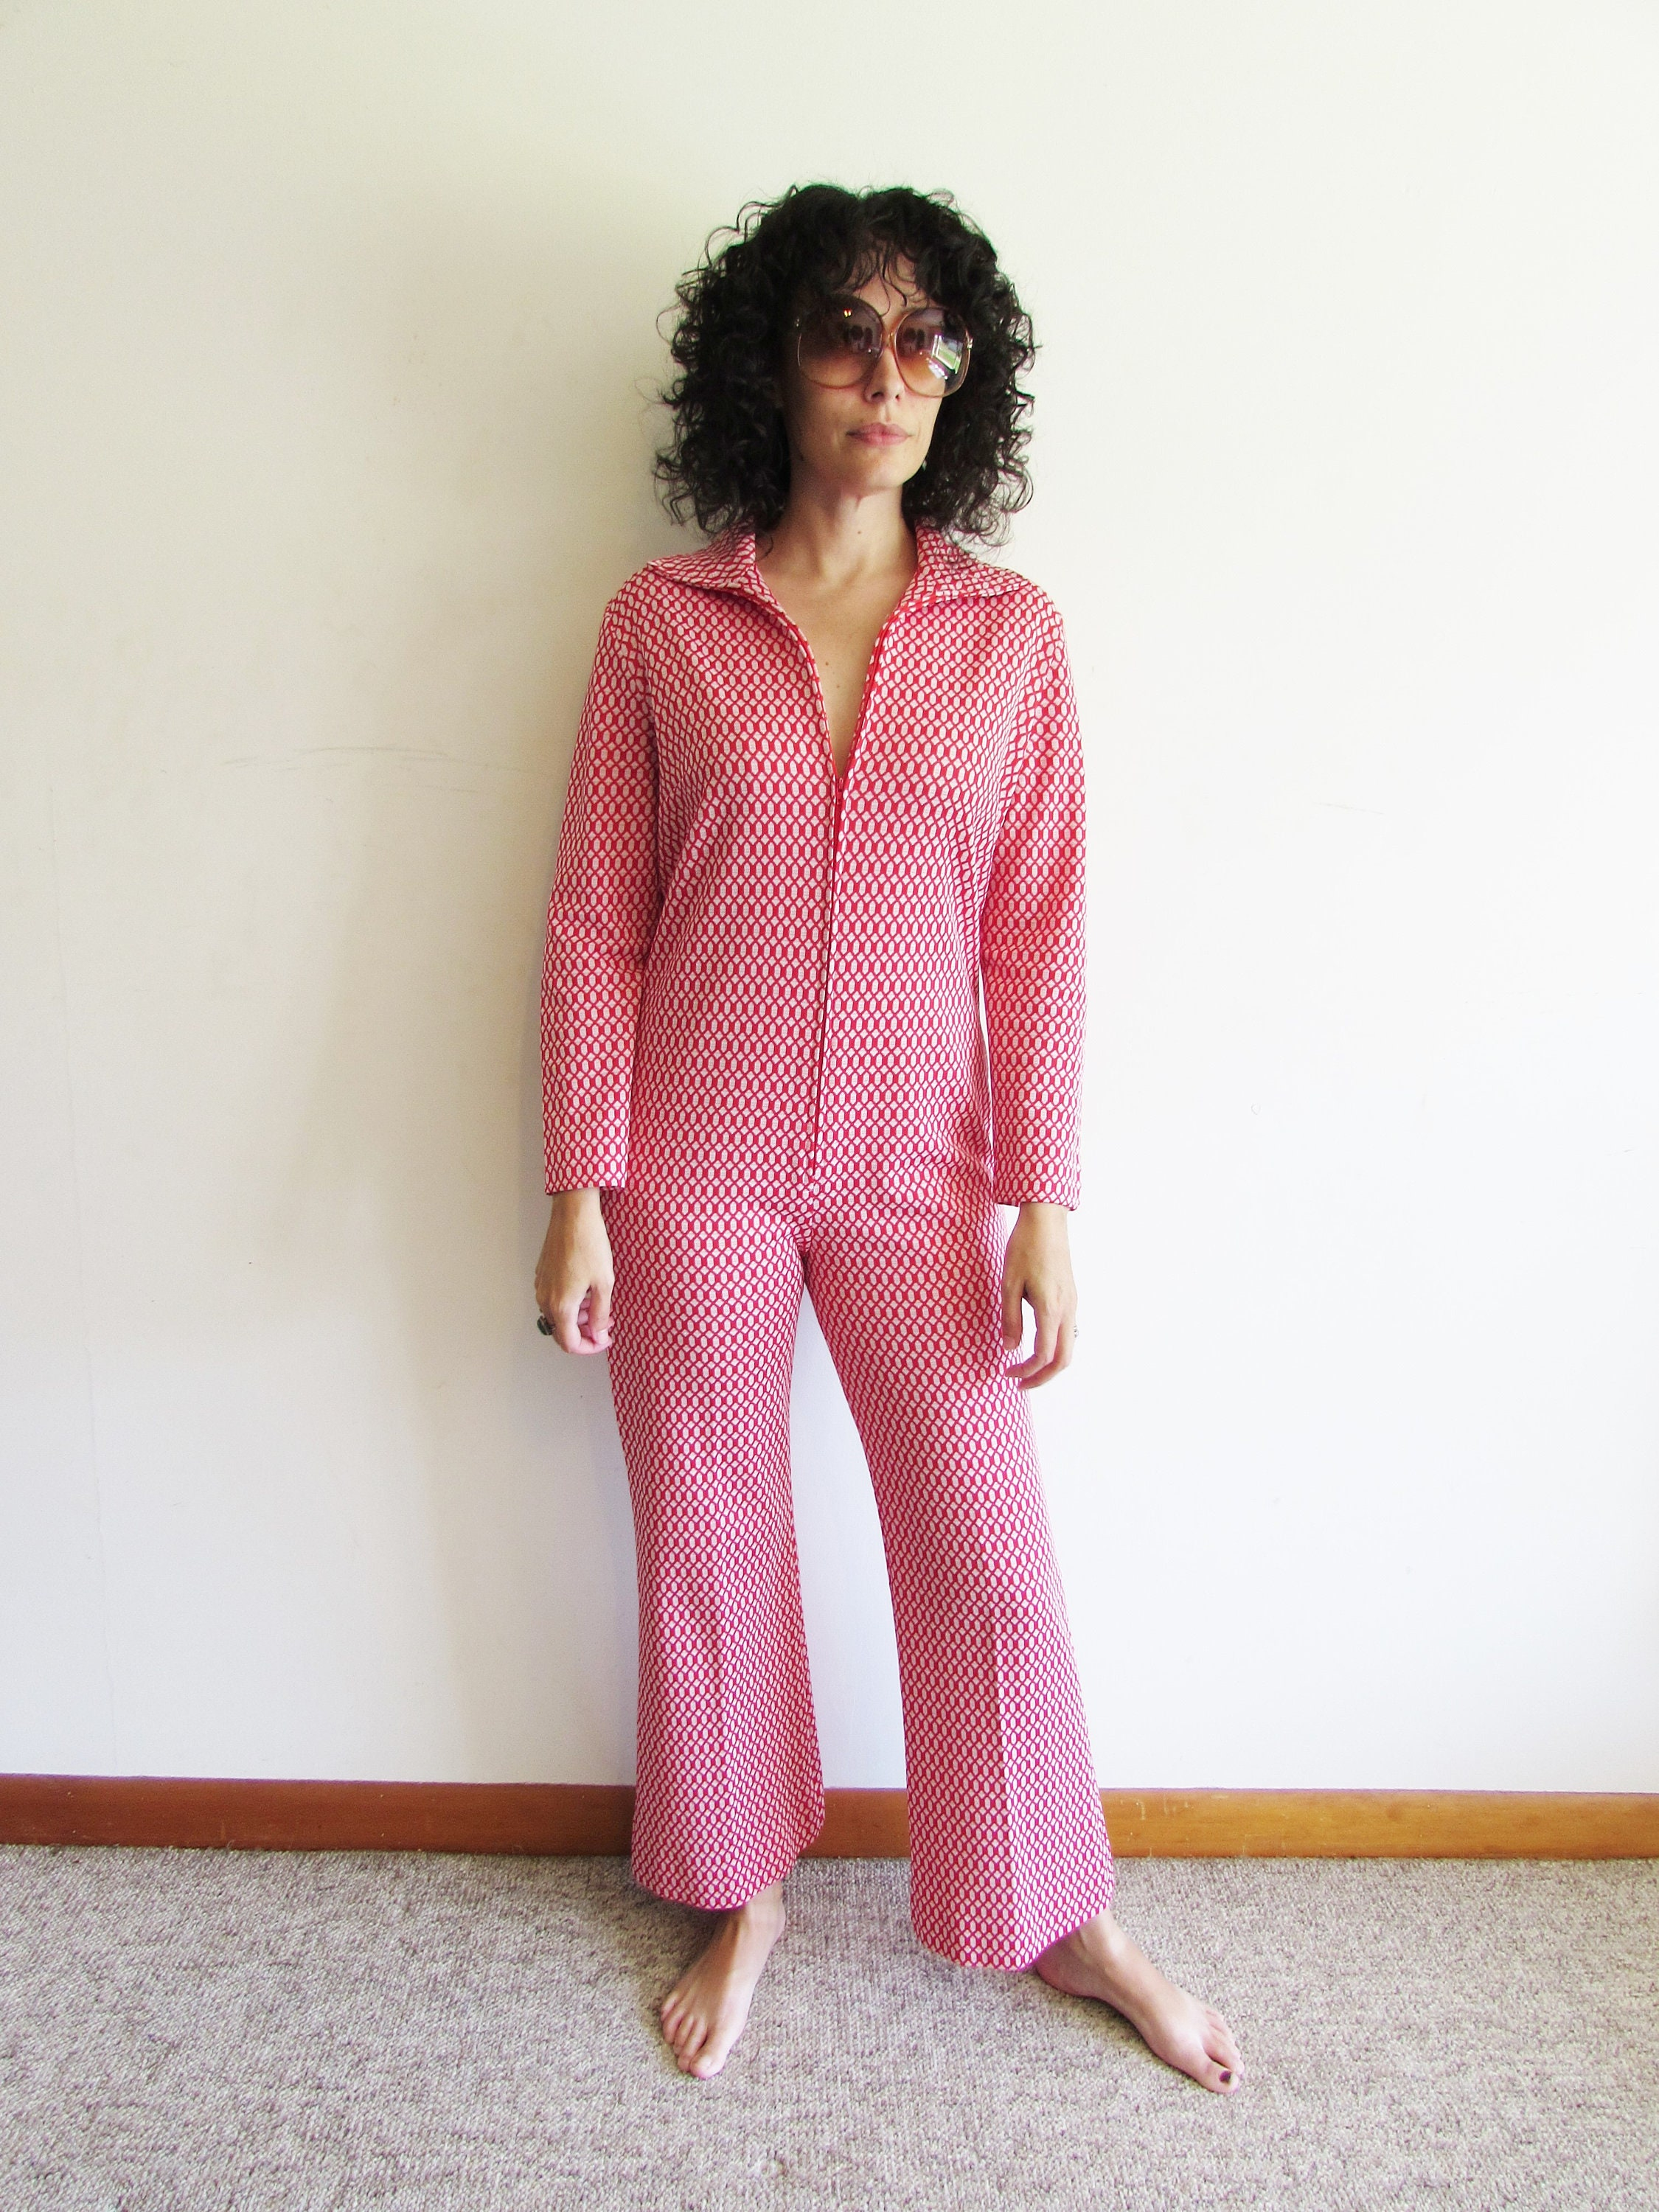 37f46ac4415 Vintage jumpsuit polyester lounge wear red and white zip up etsy jpg  2250x3000 Polyester jumpsuit